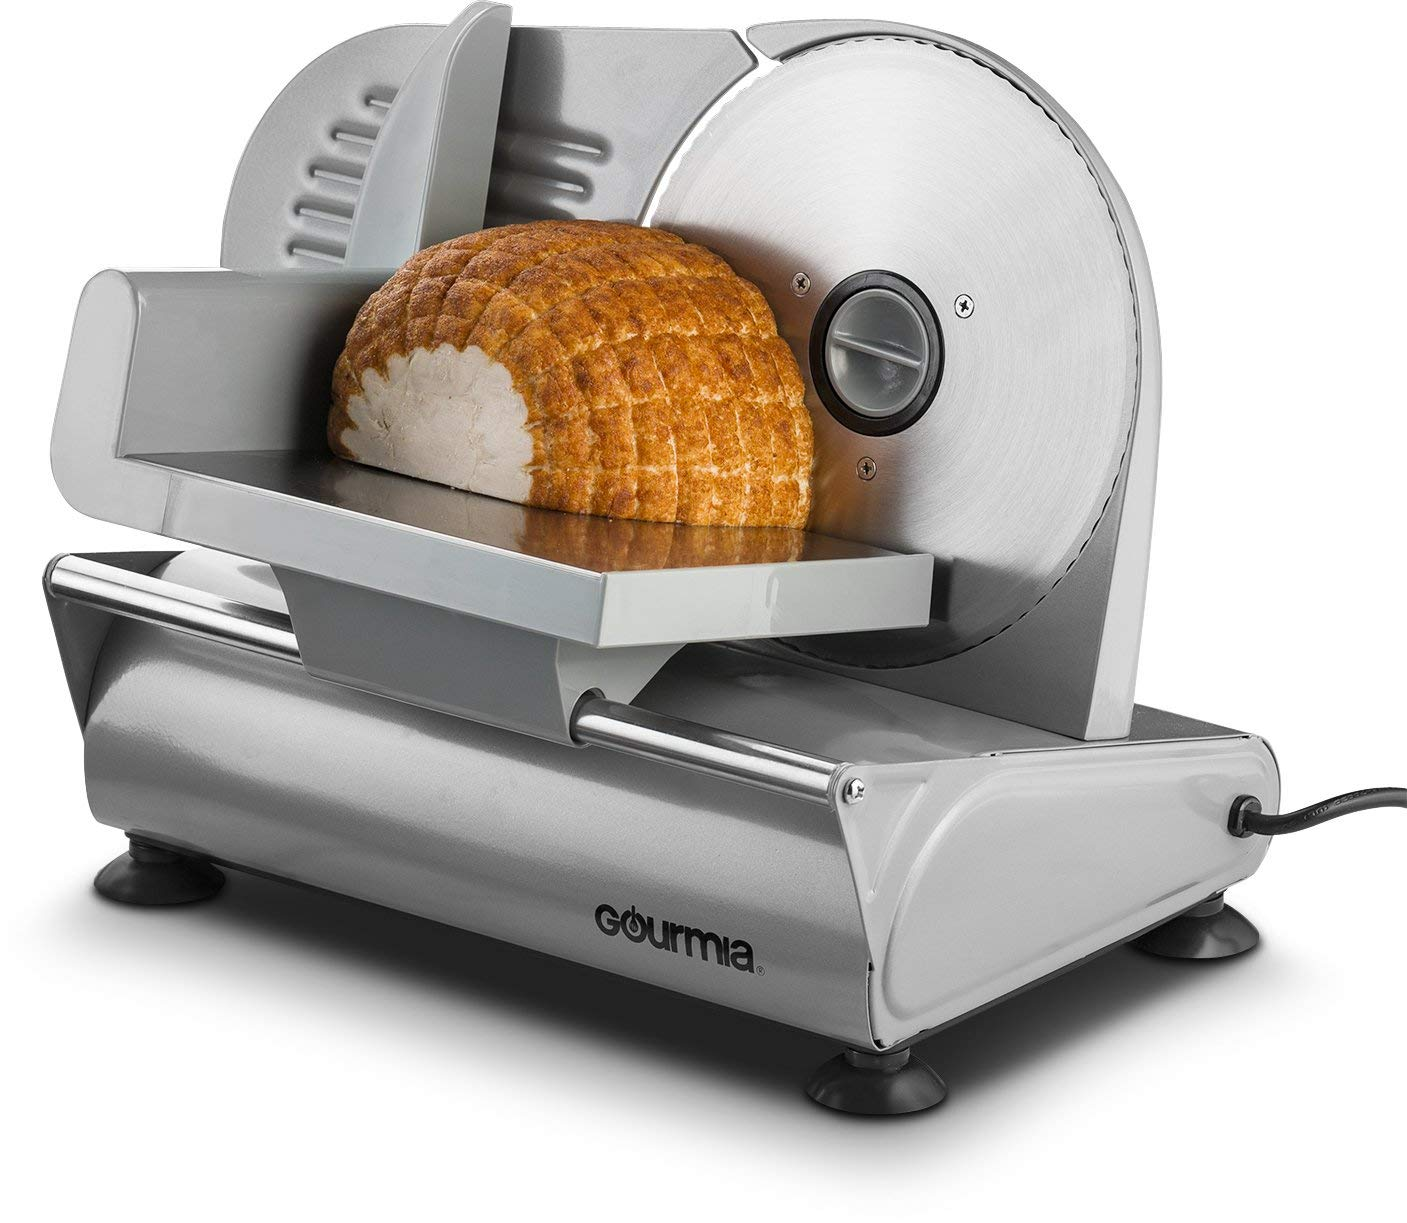 . Gourmia GFS-700 Counterman Professional Electric Power Food & Meat Slicer